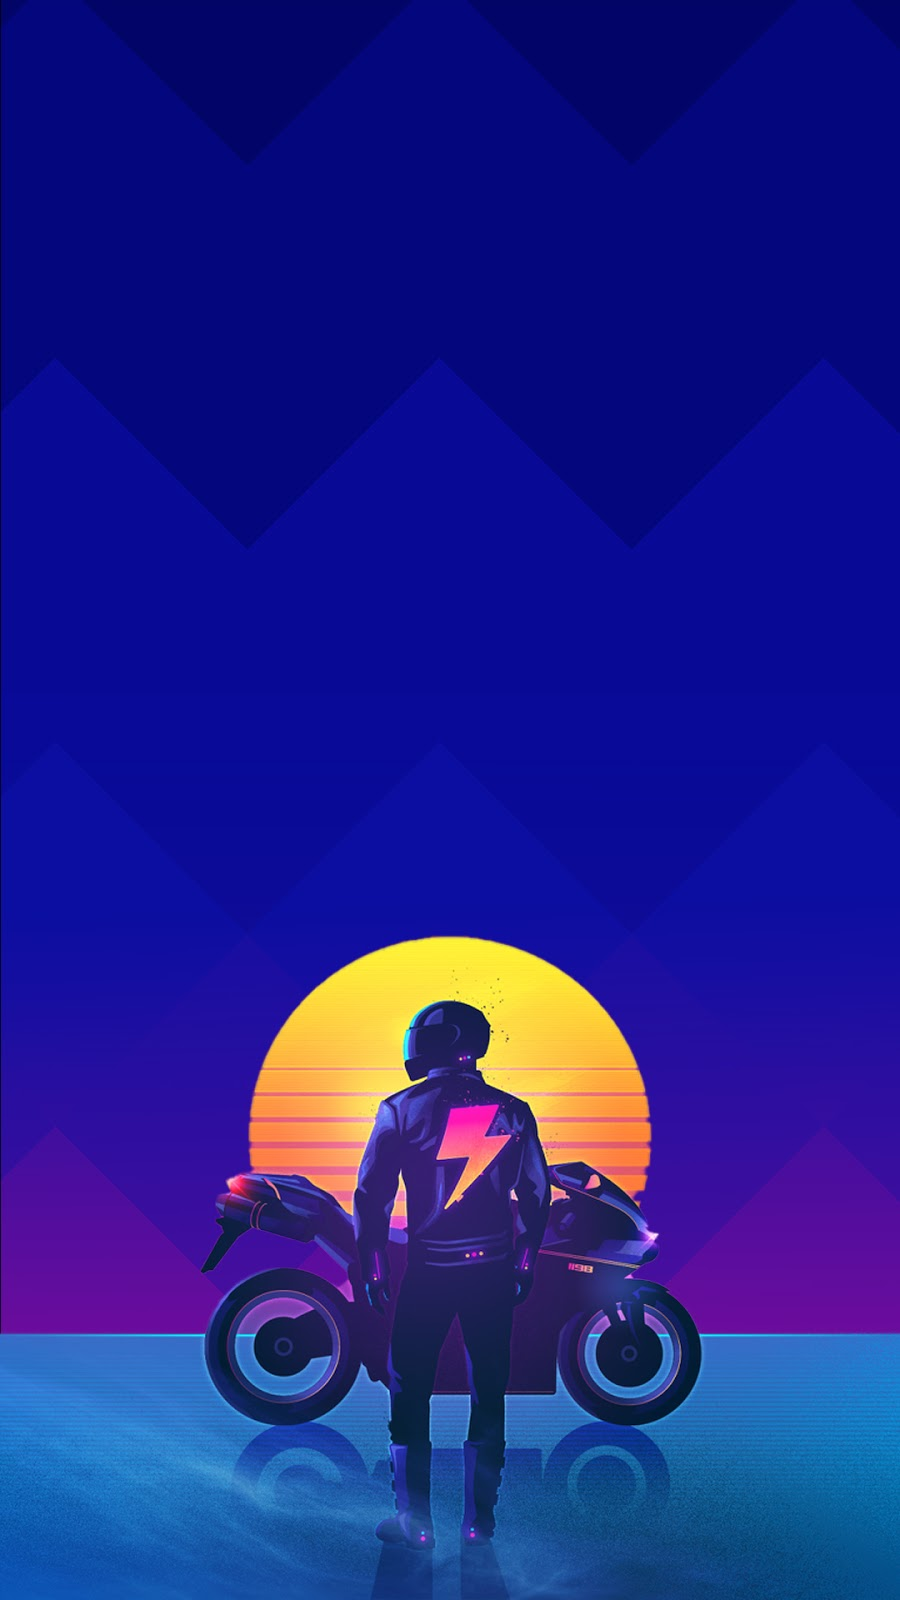 rider cyberpunk outrun wallpaper for phone in 1080p